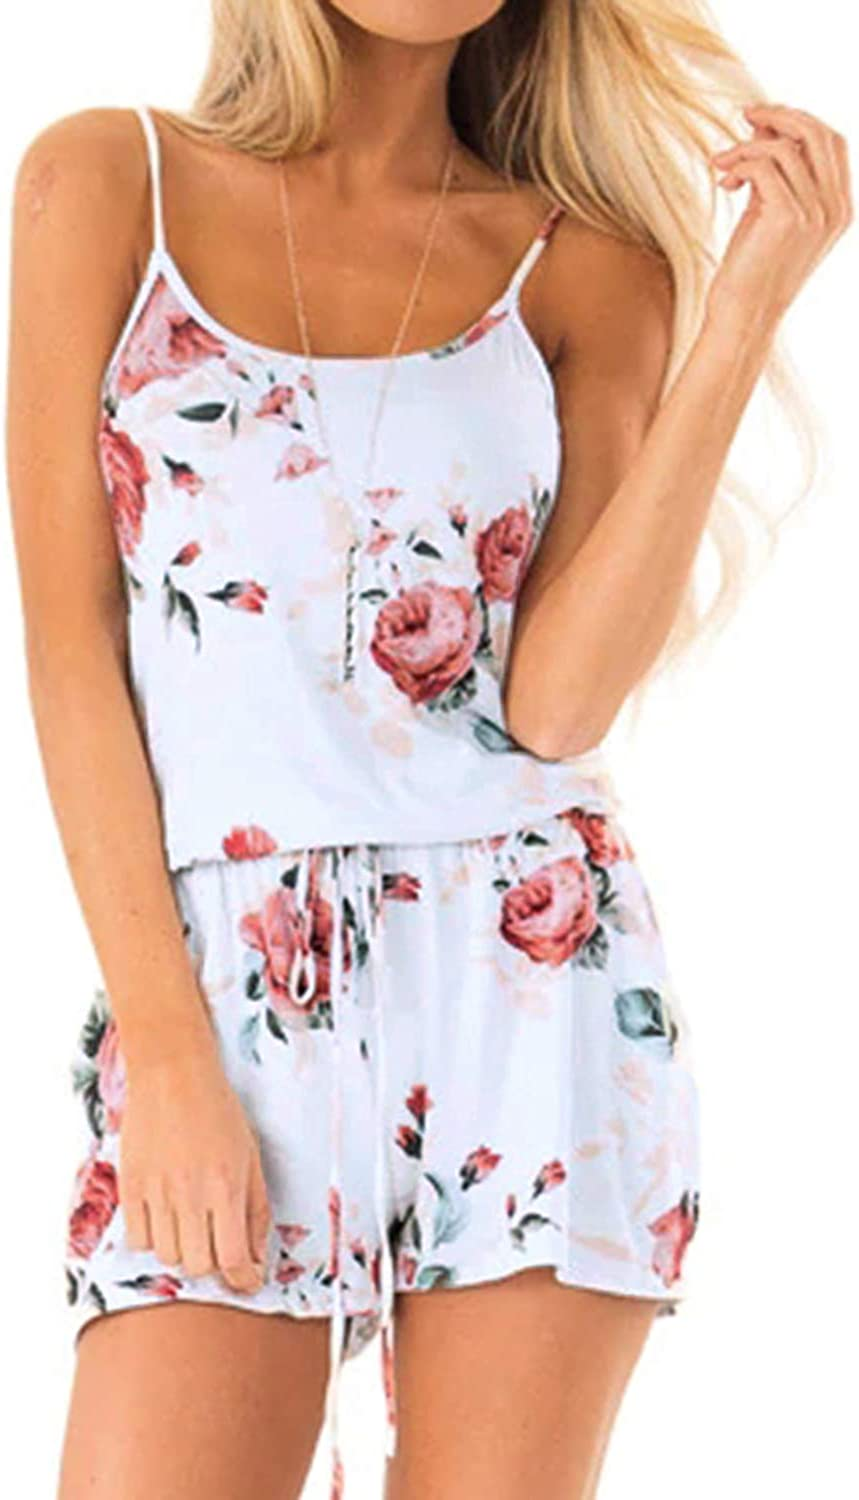 ACHIOOWA Women Jumpsuit Floral Print Playsuit Sleeveless Spaghetti Strap Short Jumpsuit Rompers with Belt Round Neck Casual Jumpsuit Summer Beach Playsuit